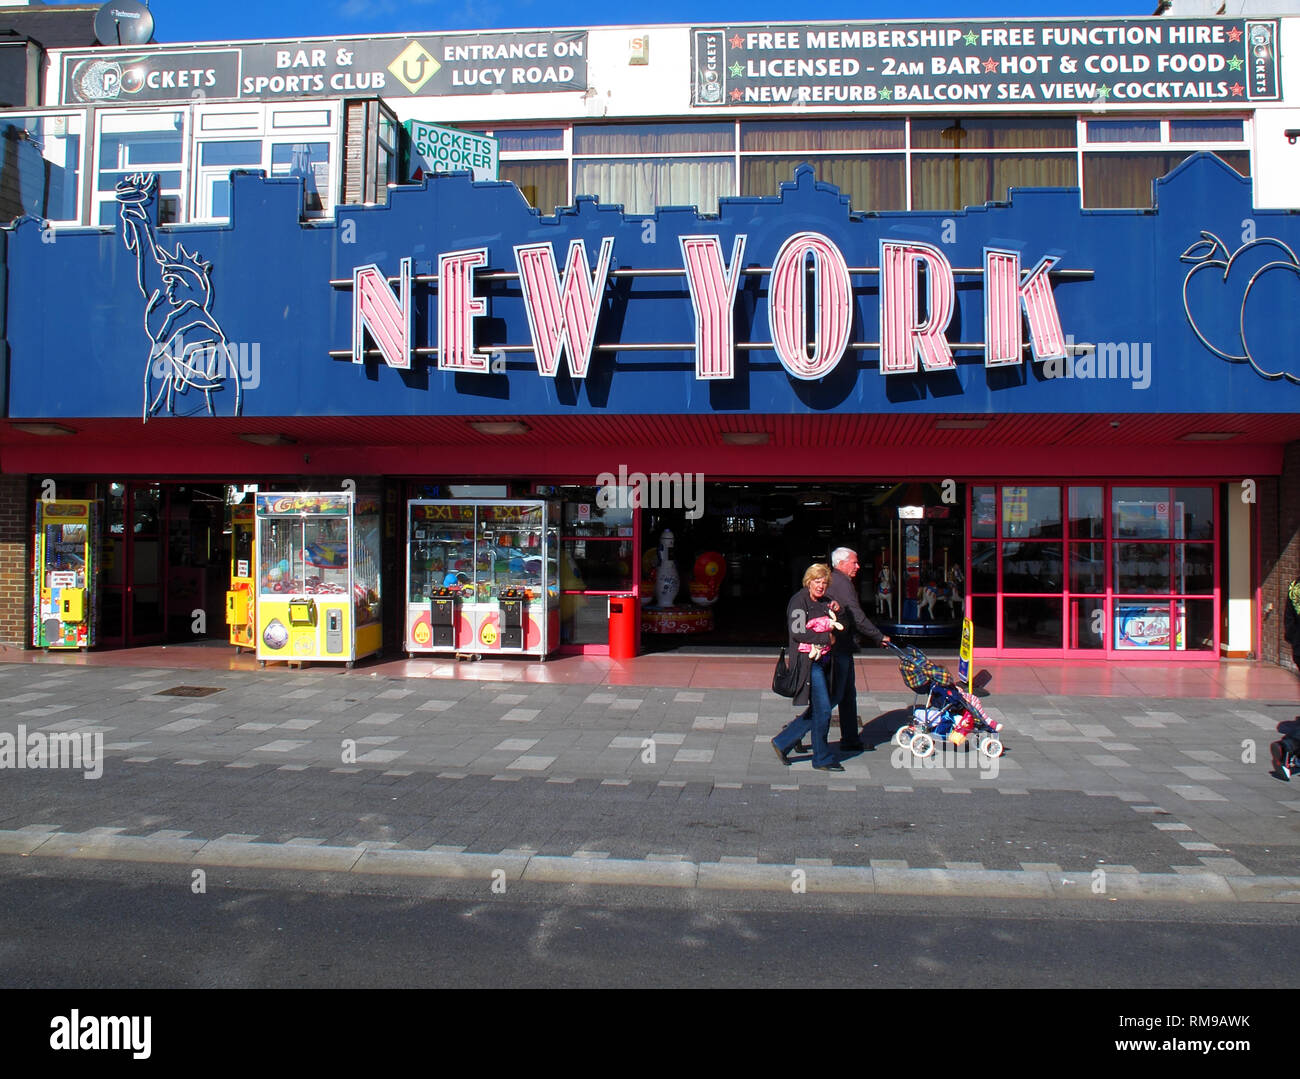 New York arcade, Southend-on-sea beachfront, Essex seaside, South East England, UK - Stock Image